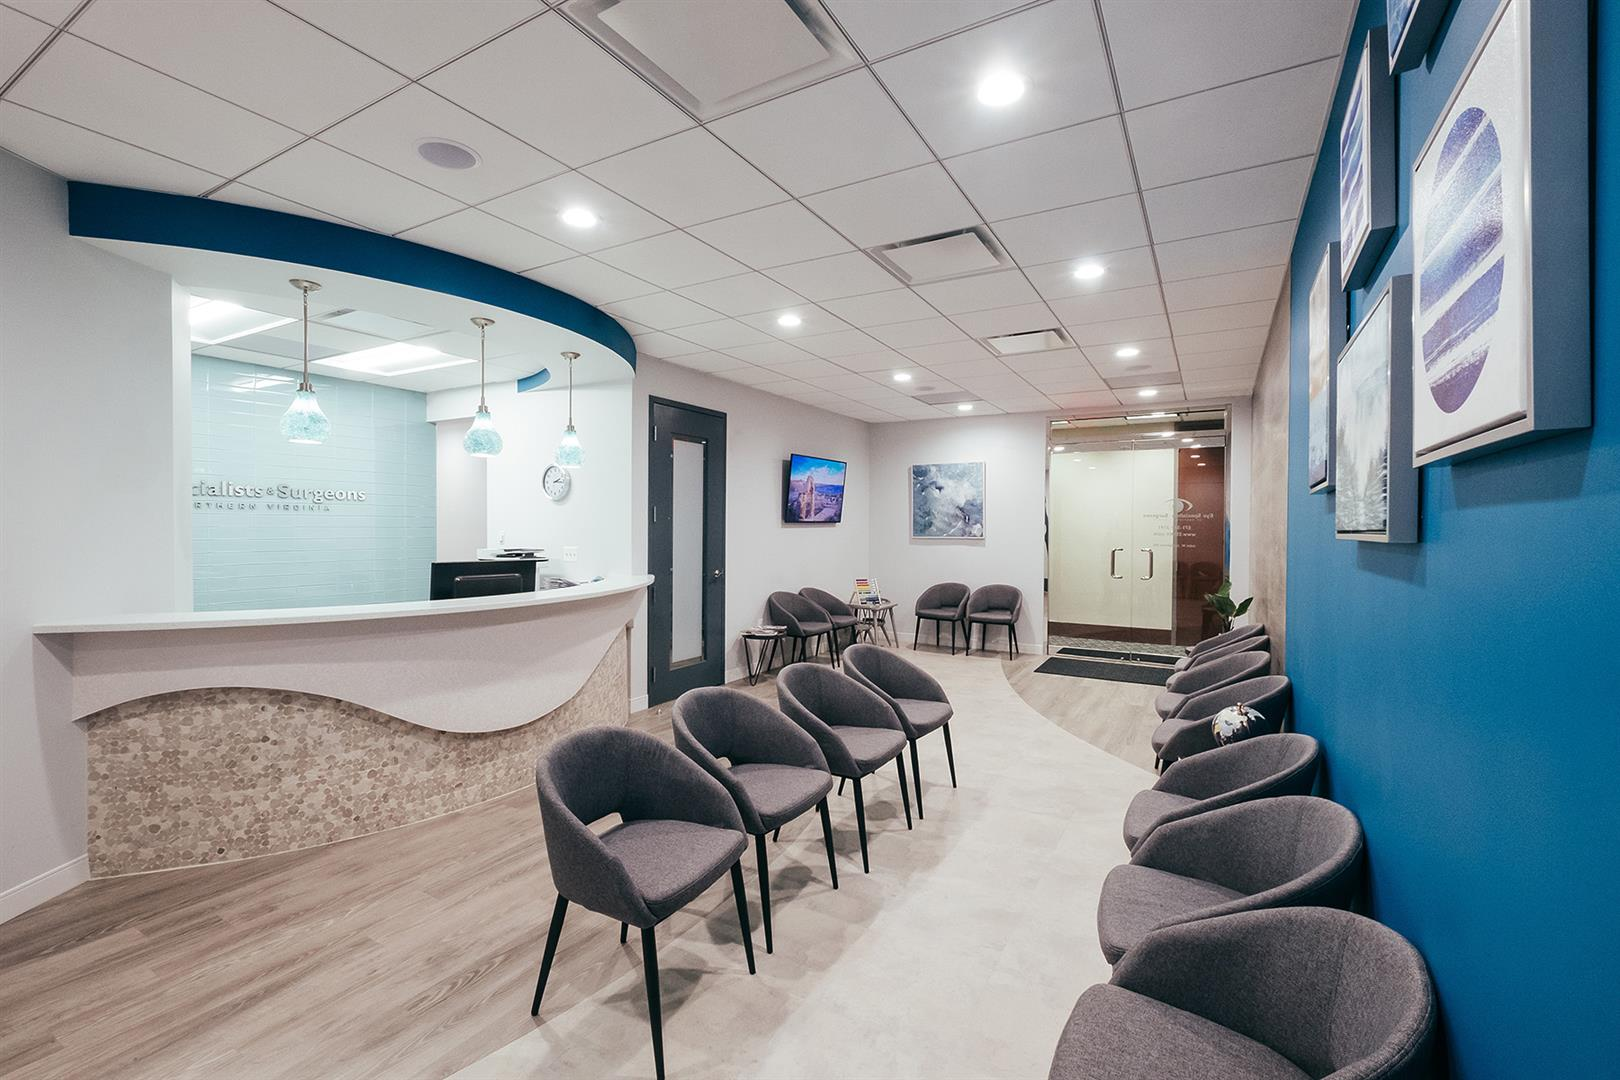 Eye specialists surgeons of northern virginia interior - Interior designer northern virginia ...